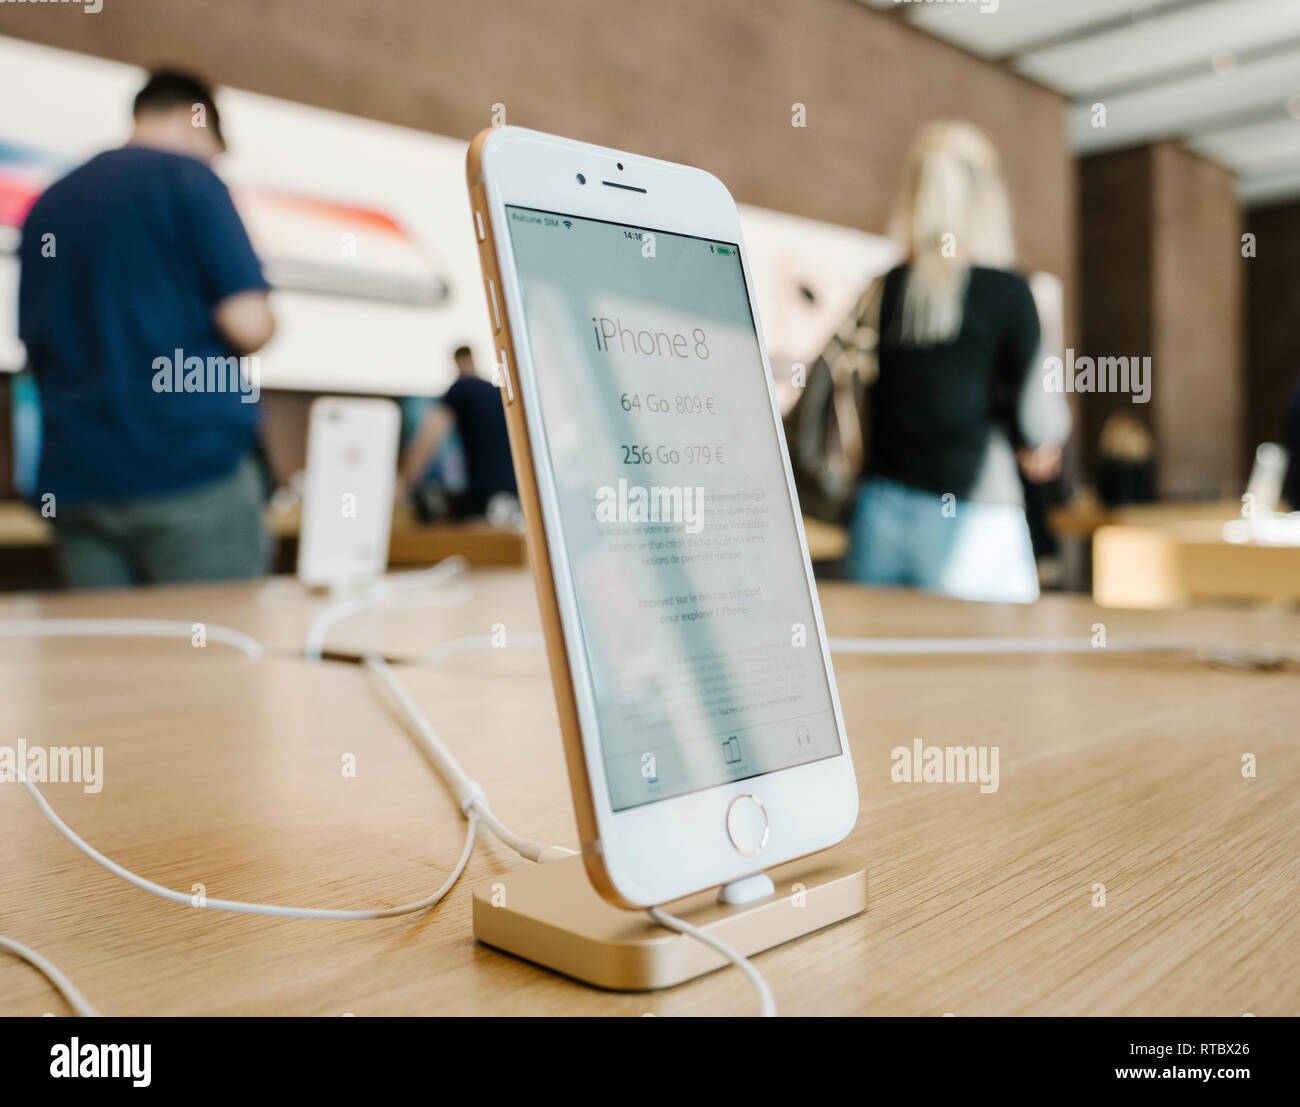 PARIS, FRANCE - SEP 22, 2017: New iPhone 8 and iPhone 8 Plus, as well the updated Apple Watch, Apple TV goes on sale today in Apple Store with customers silhouette in background  Stock Photo